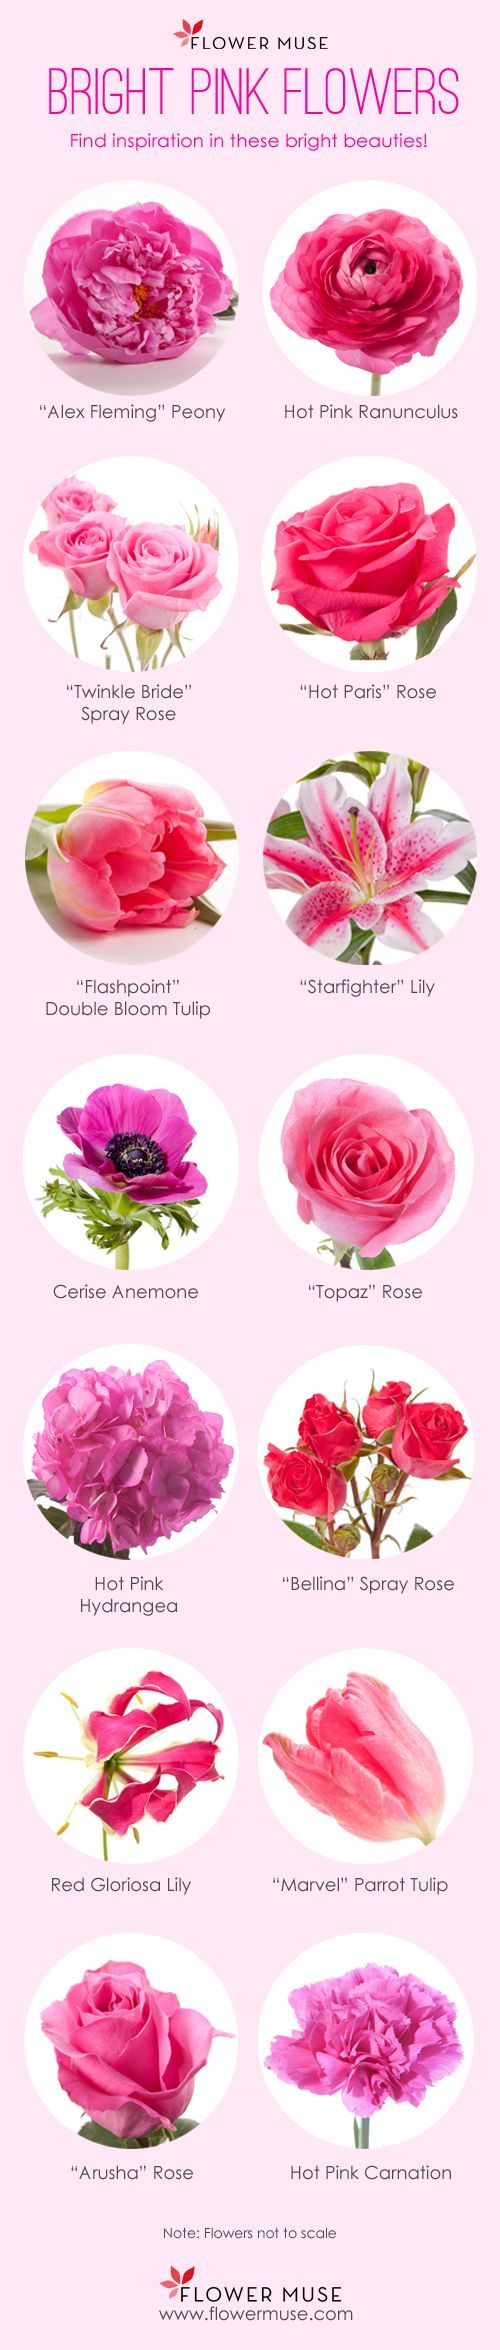 Our Favorite: Bright Pink Flowers on Flower Muse Blog: